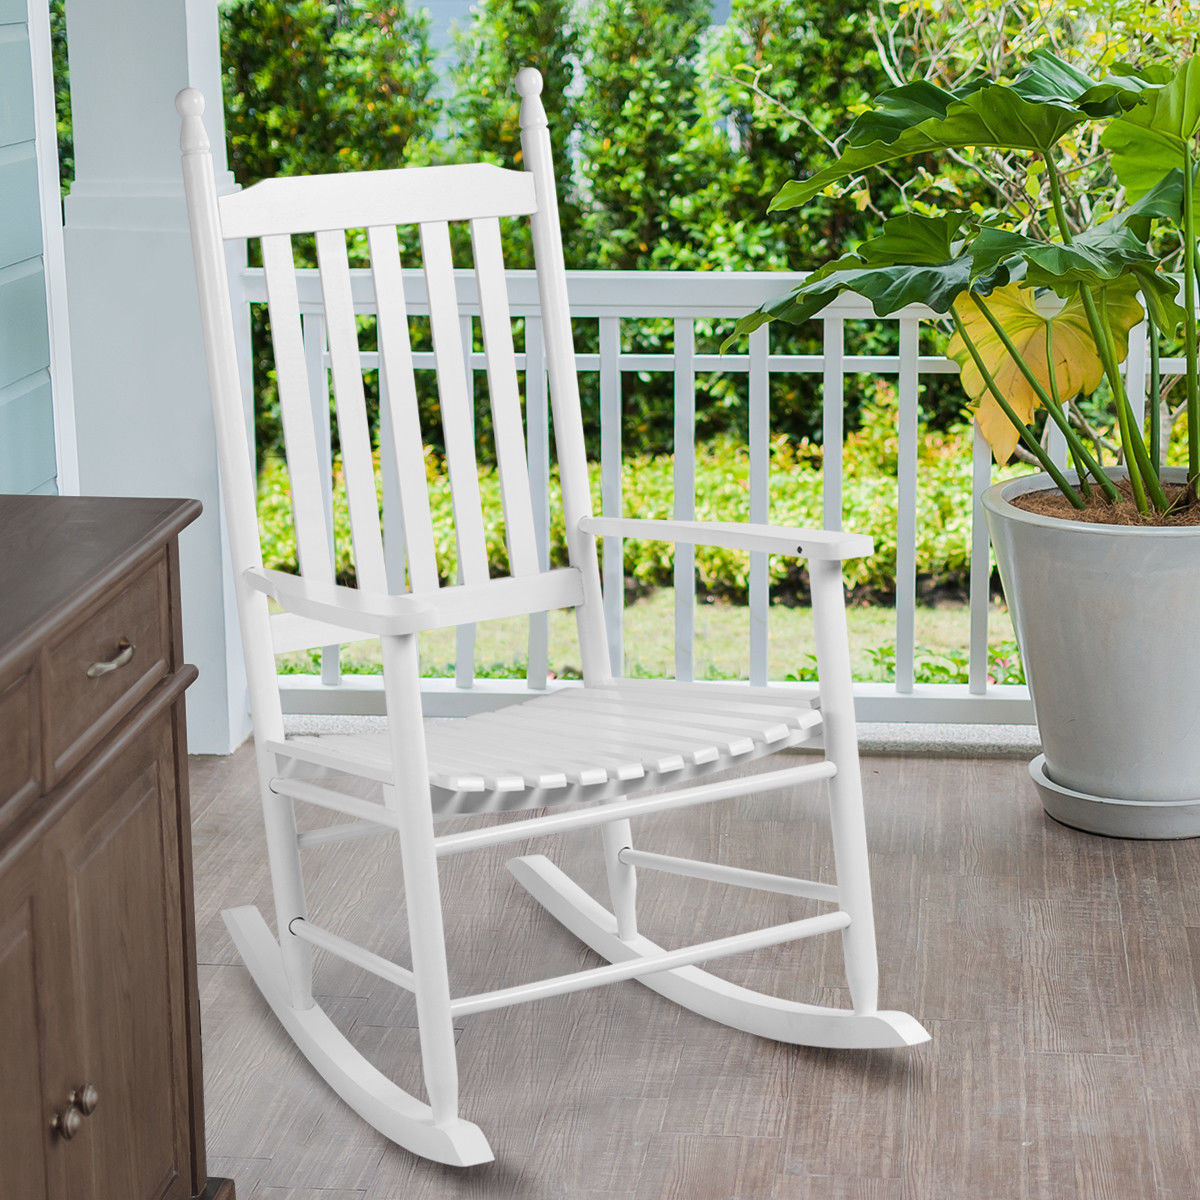 Gymax Wood Rocking Chair Porch Rocker Patio Deck Garden Backyard Furniture White